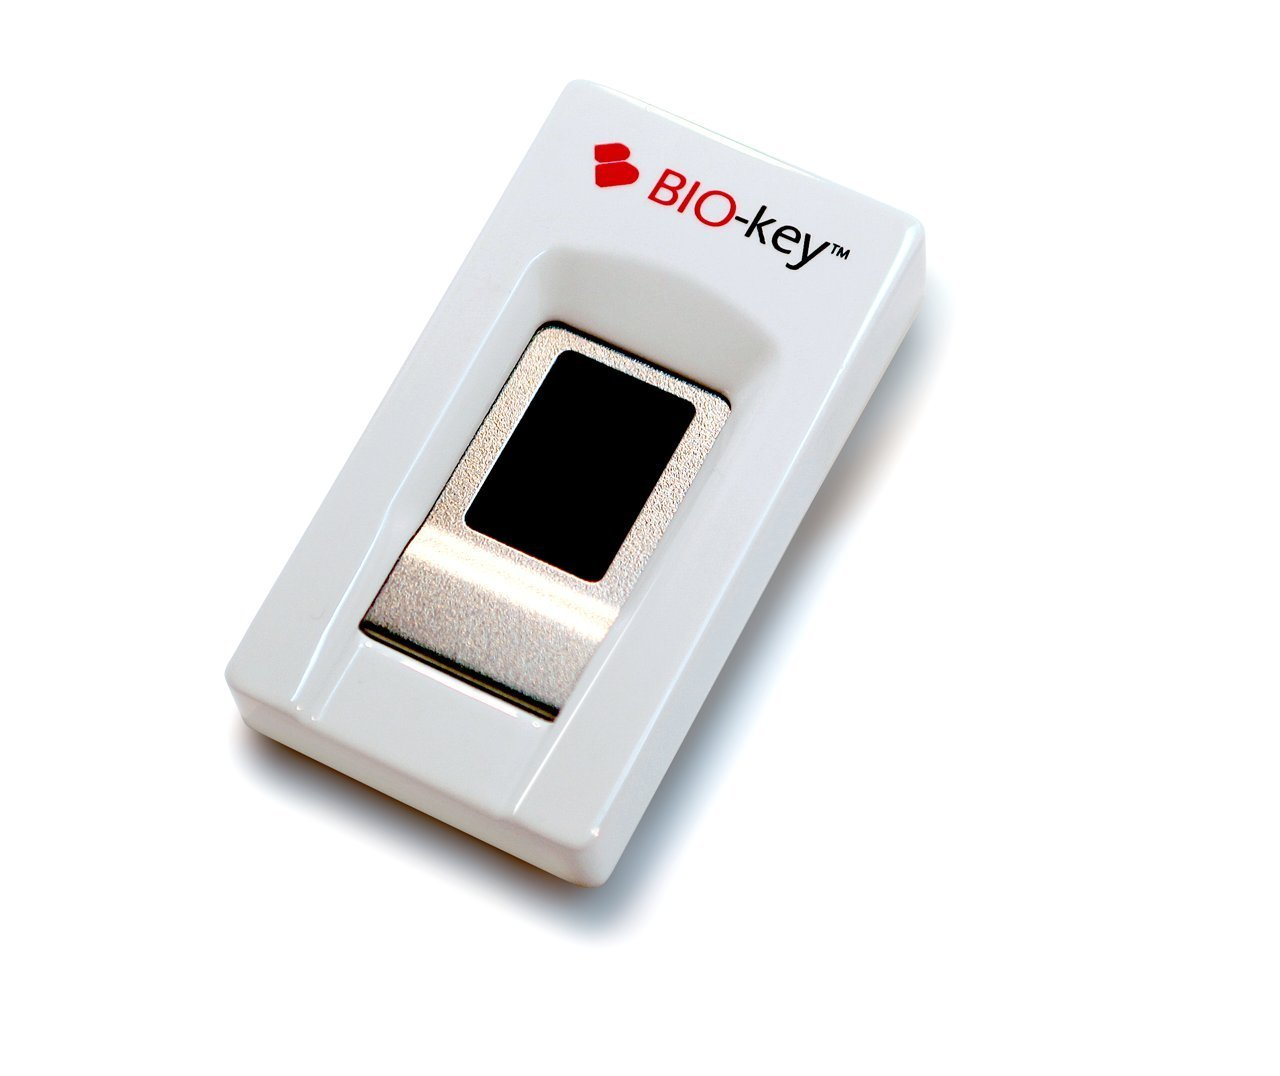 BIO-key EcoID Fingerprint Reader – Tested & Qualified by Microsoft for Windows Hello – Eliminate Passwords on Windows 7…